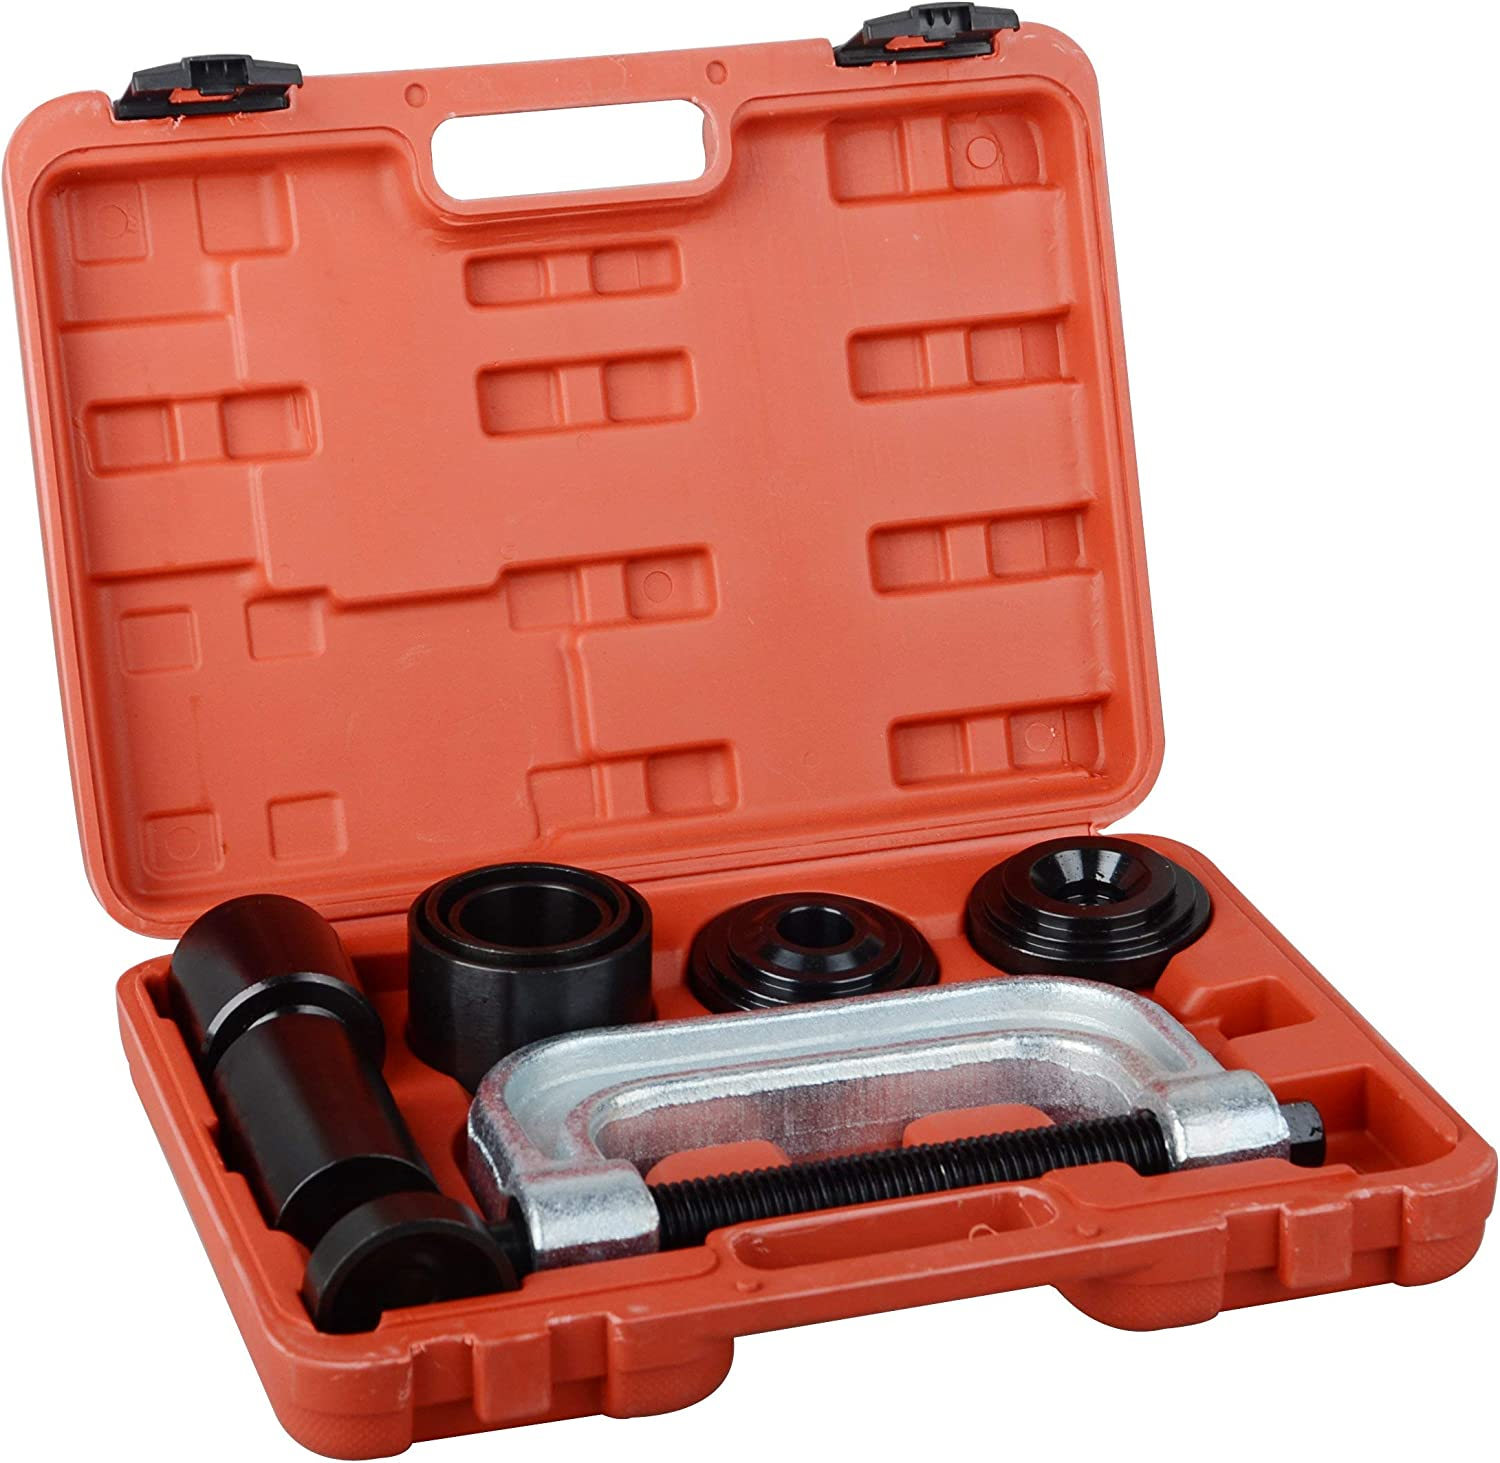 DA YUAN 4 in 1 Ball Joint Tool Service Remover Beauty products 4WD Ins 2WD Kit Free shipping New